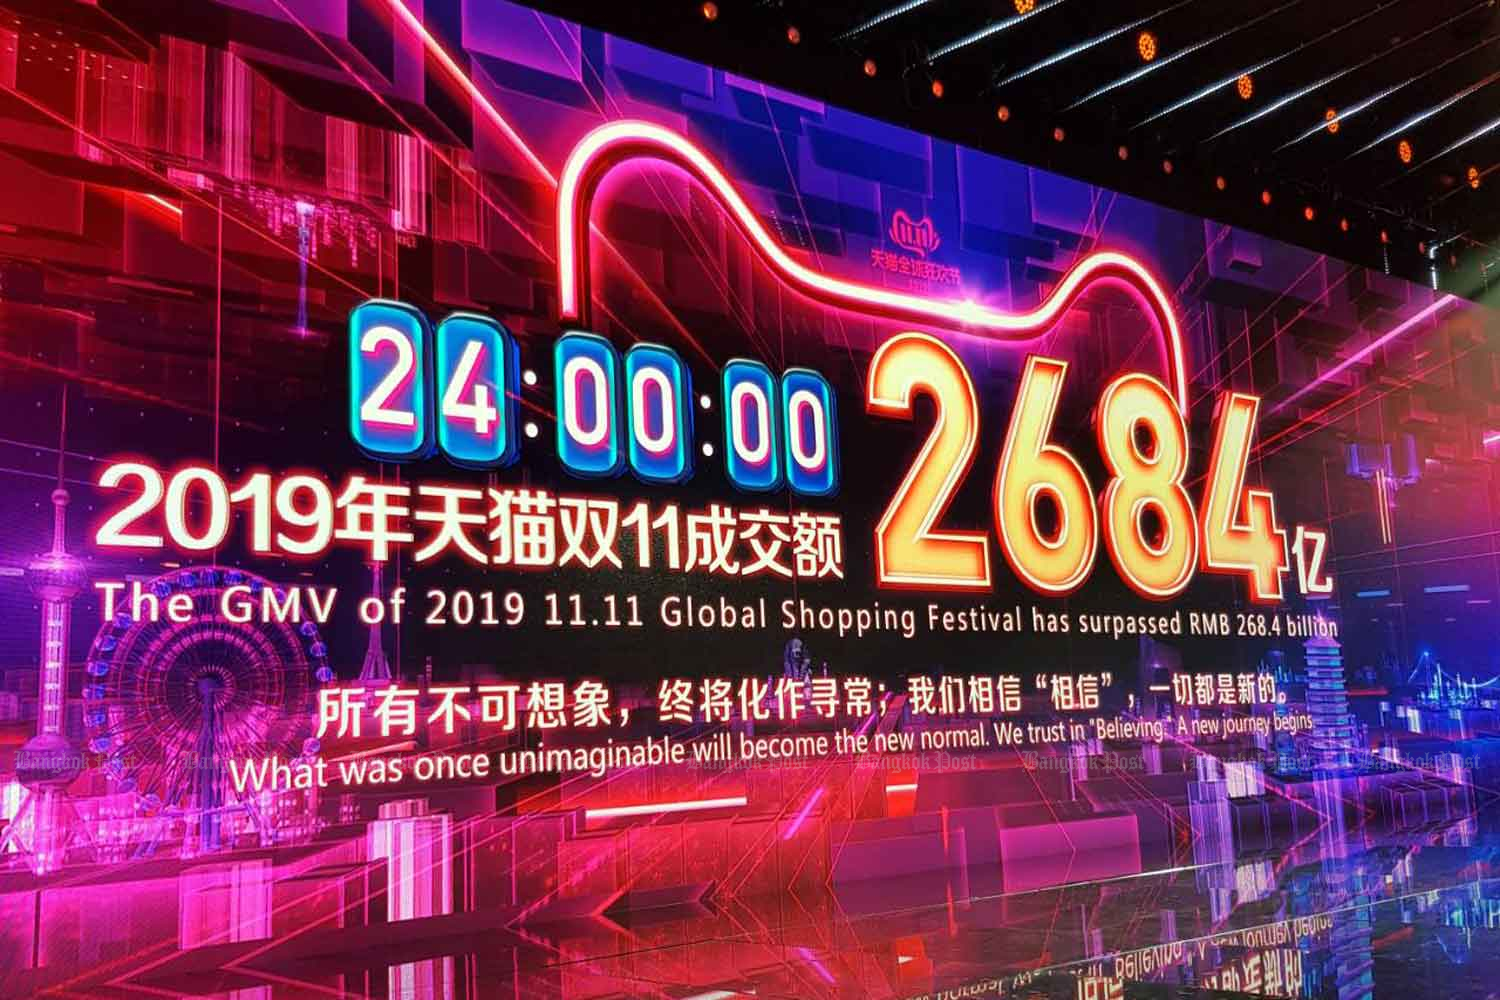 A large screen indicates Alibaba's 11.11 global shopping festival surpassed 268.4 billion yuan (1.1 trillion baht) after a one-day campaign ended on Monday. (Photo by Suchit Leesa-nguansuk)